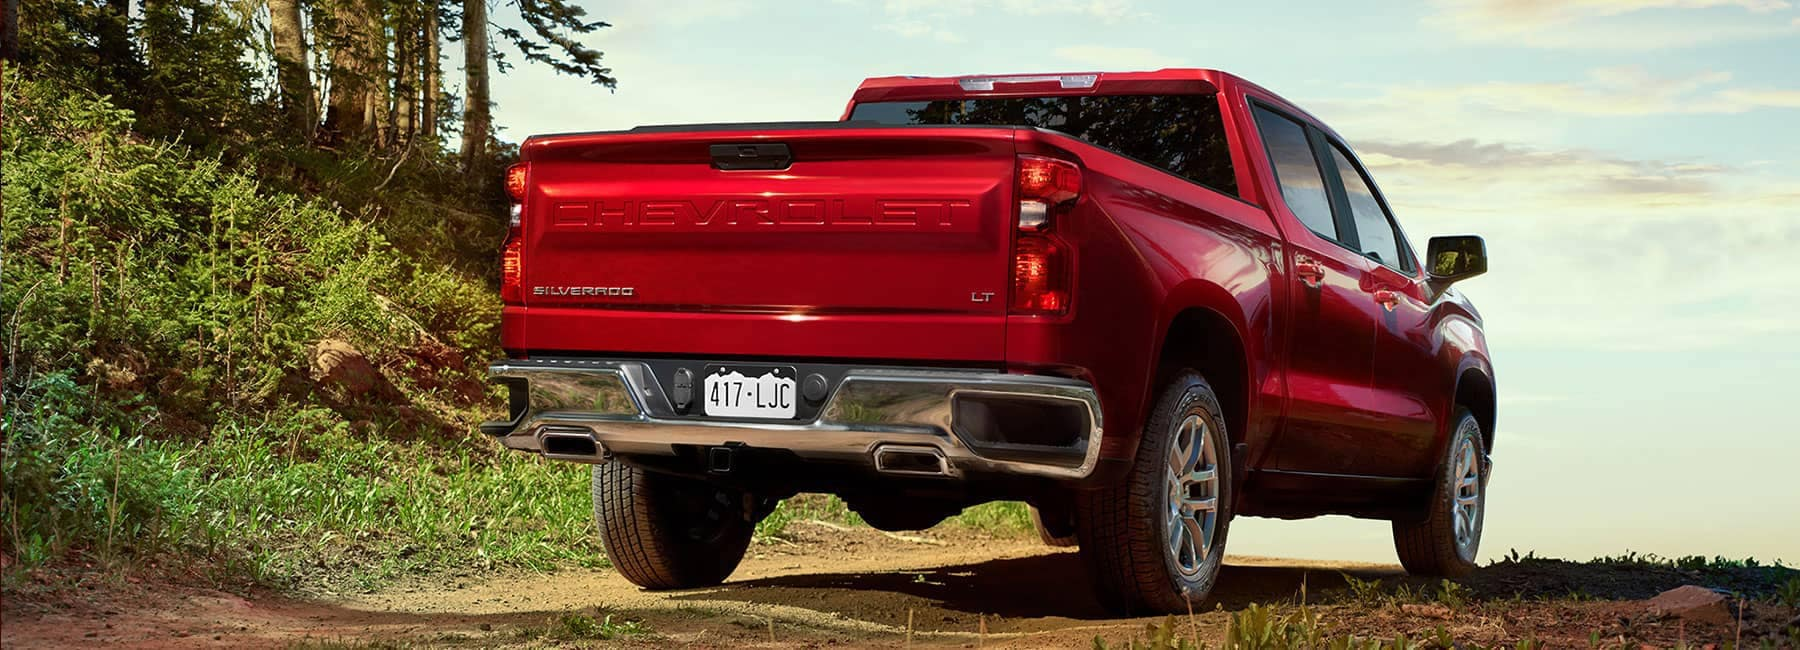 2019 Red Chevrolet Silverado LT Back View Parked on Dirt Road